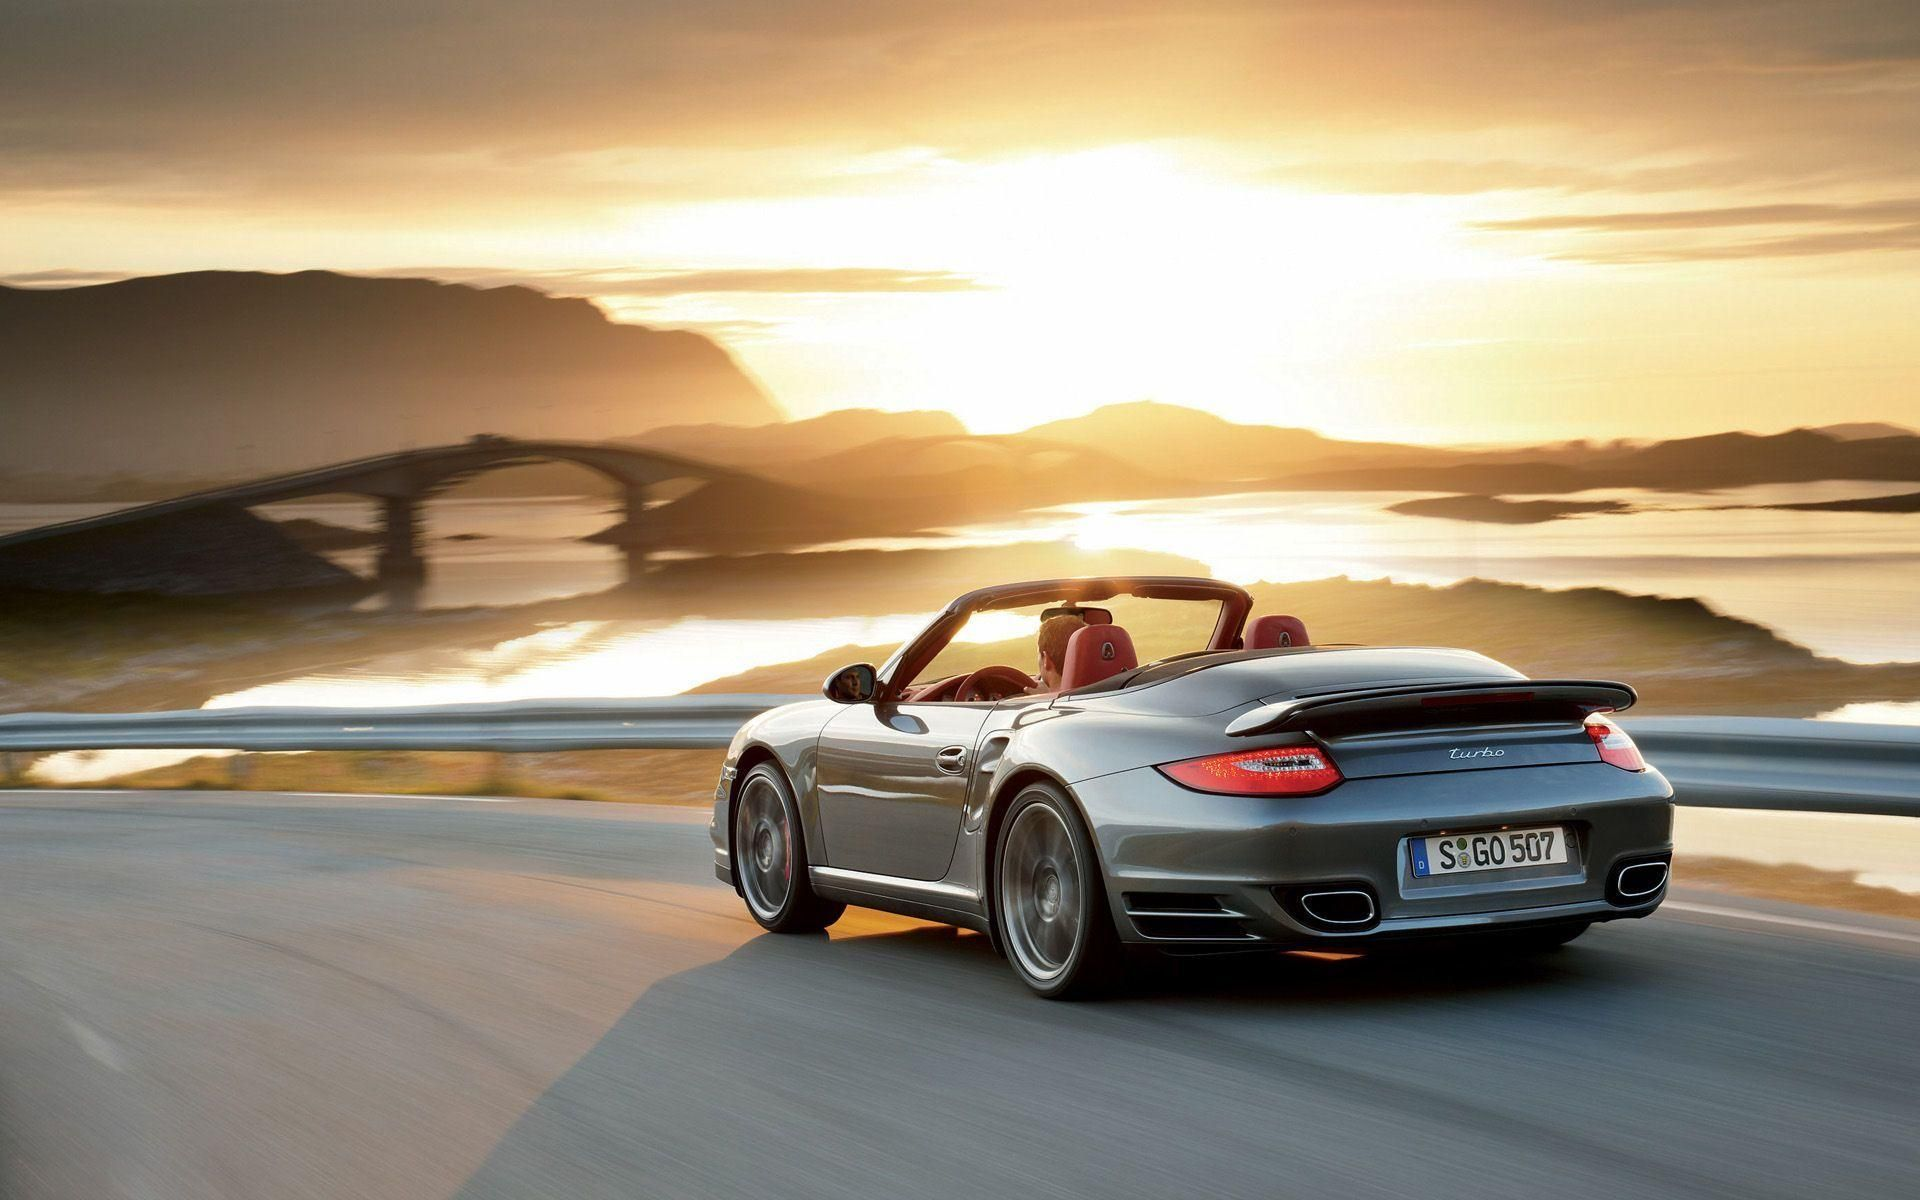 Porsche Car Full Hd Wallpapers Free Download 2 Wallpaper Free Porsche Hintergrundbilder Hd